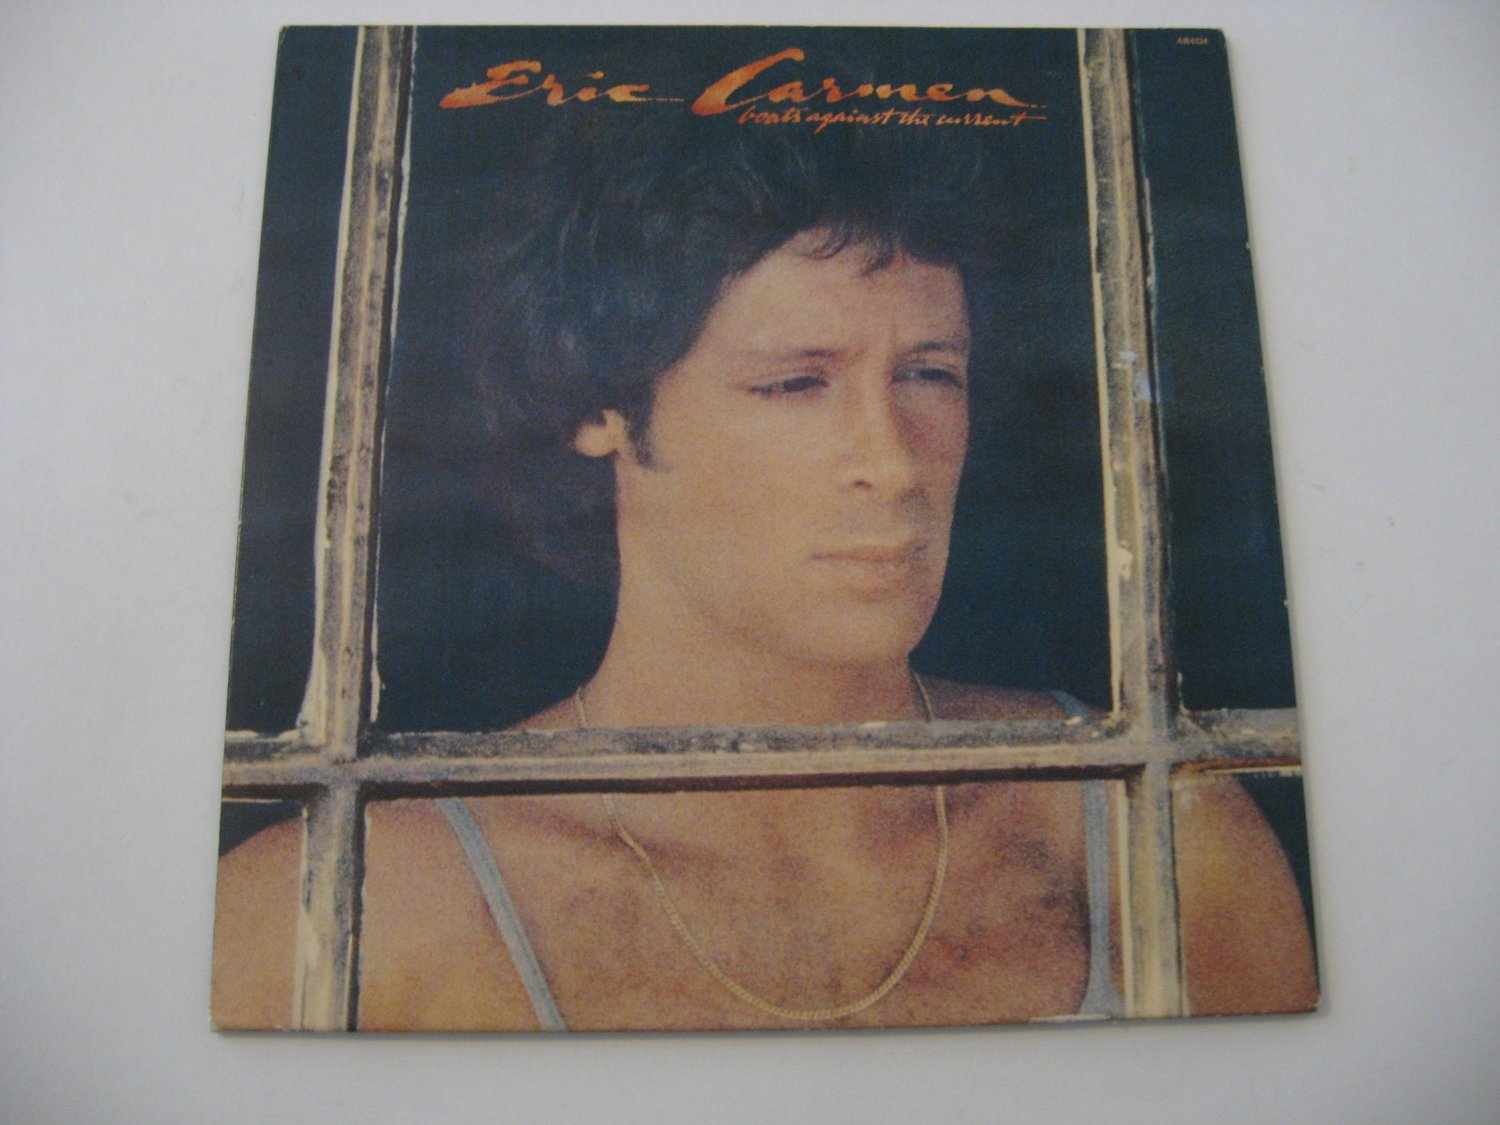 Eric Carmen Boats Against The Current 1977 Records